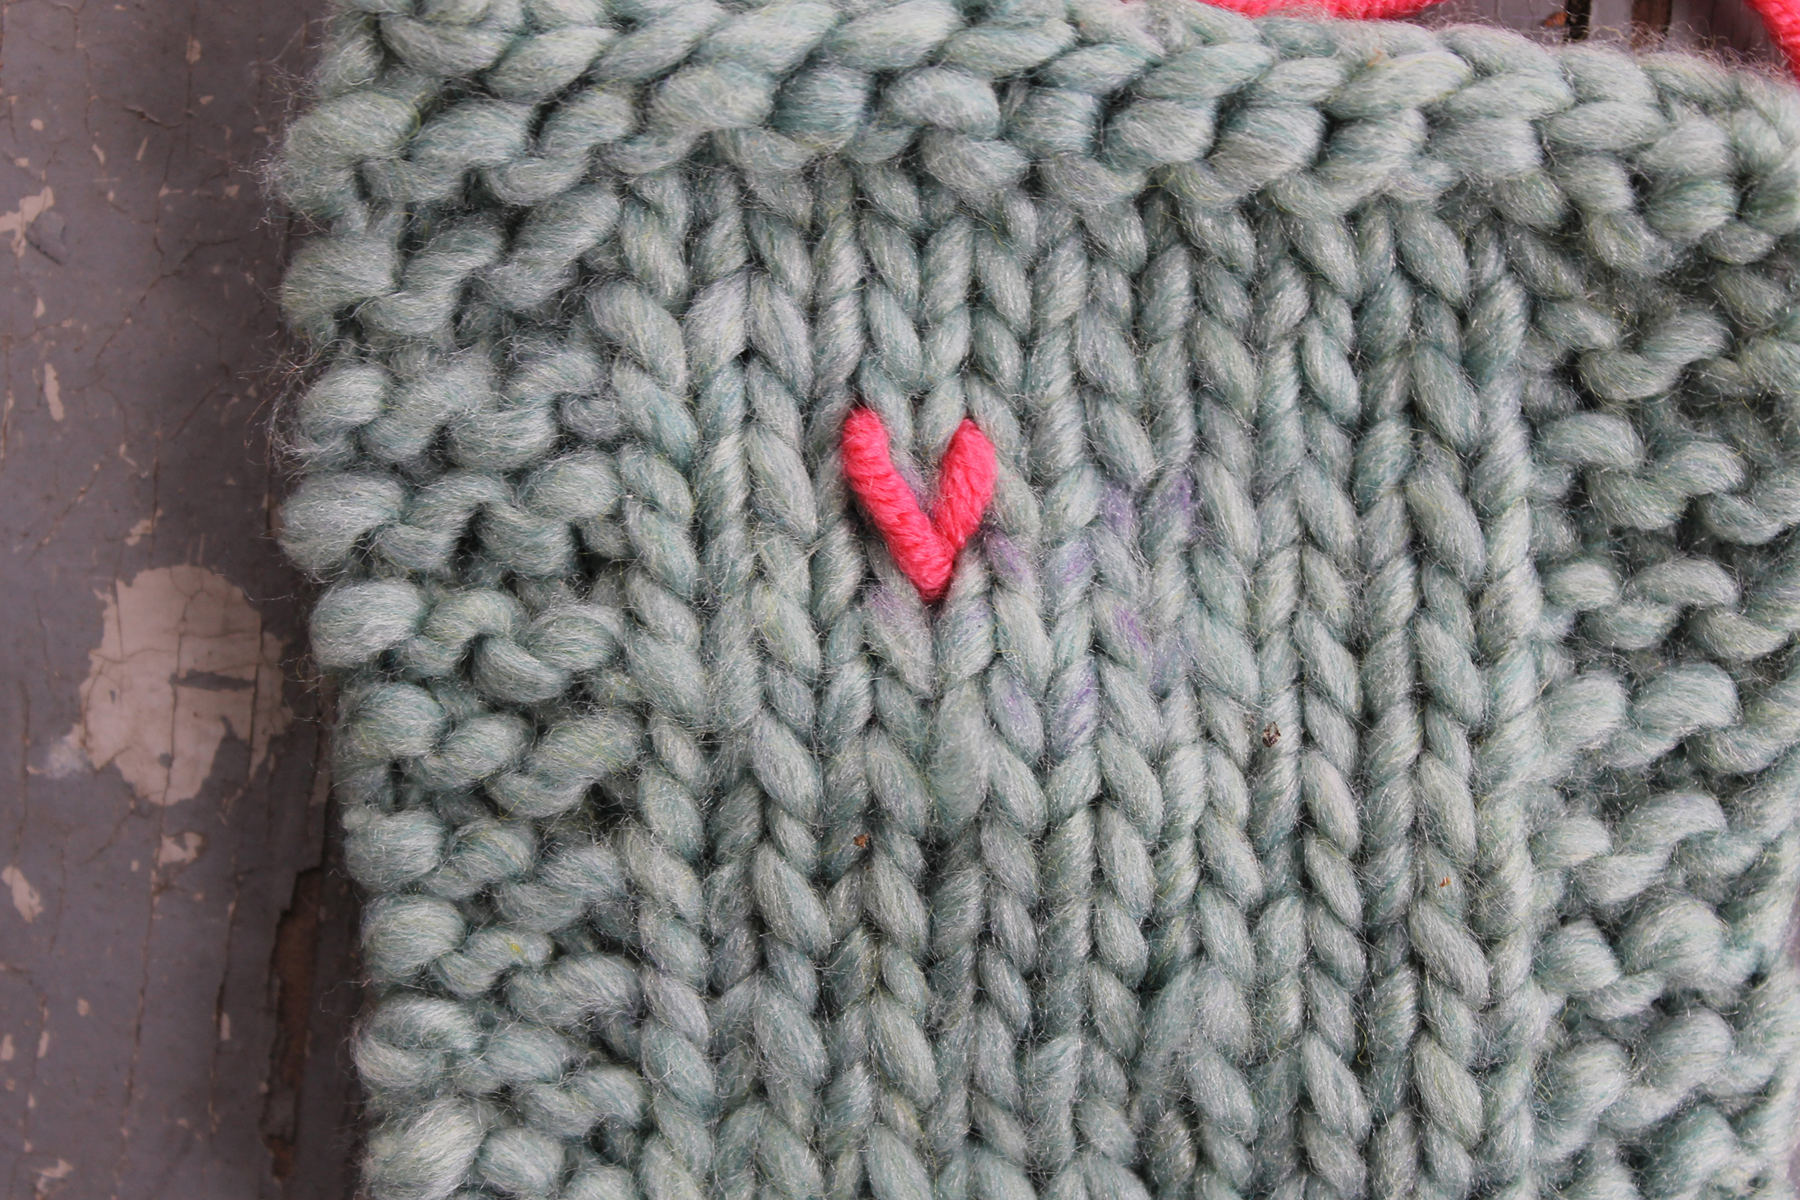 One completed duplicate stitch